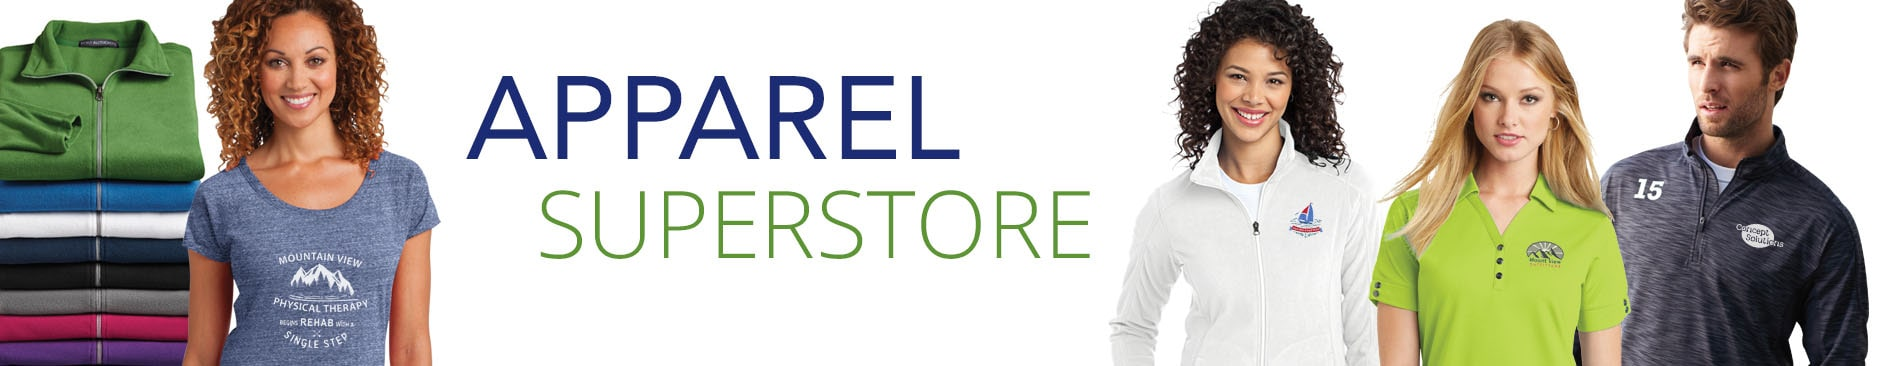 Apparel Superstore